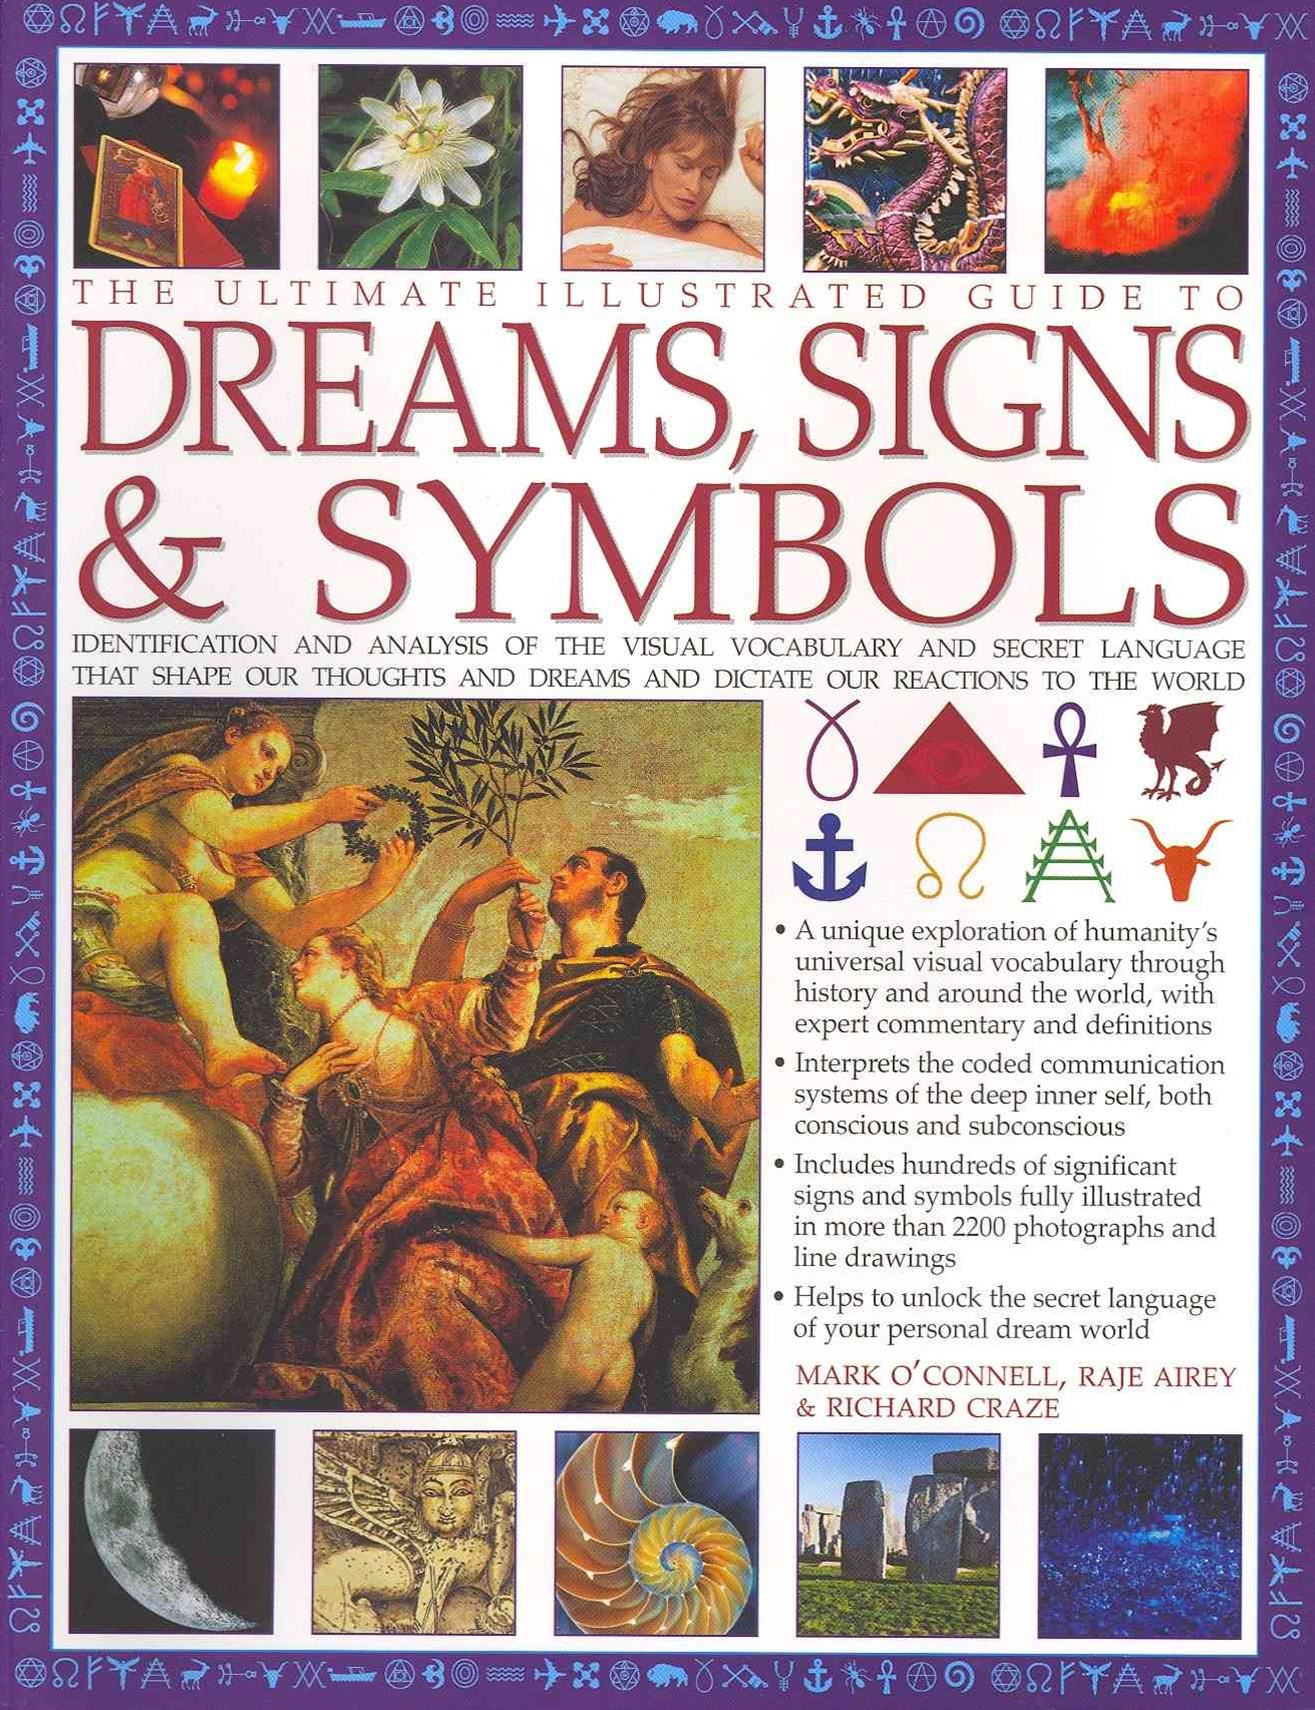 The Ultimate Illustrated Guide to Dreams, Signs and Symbols